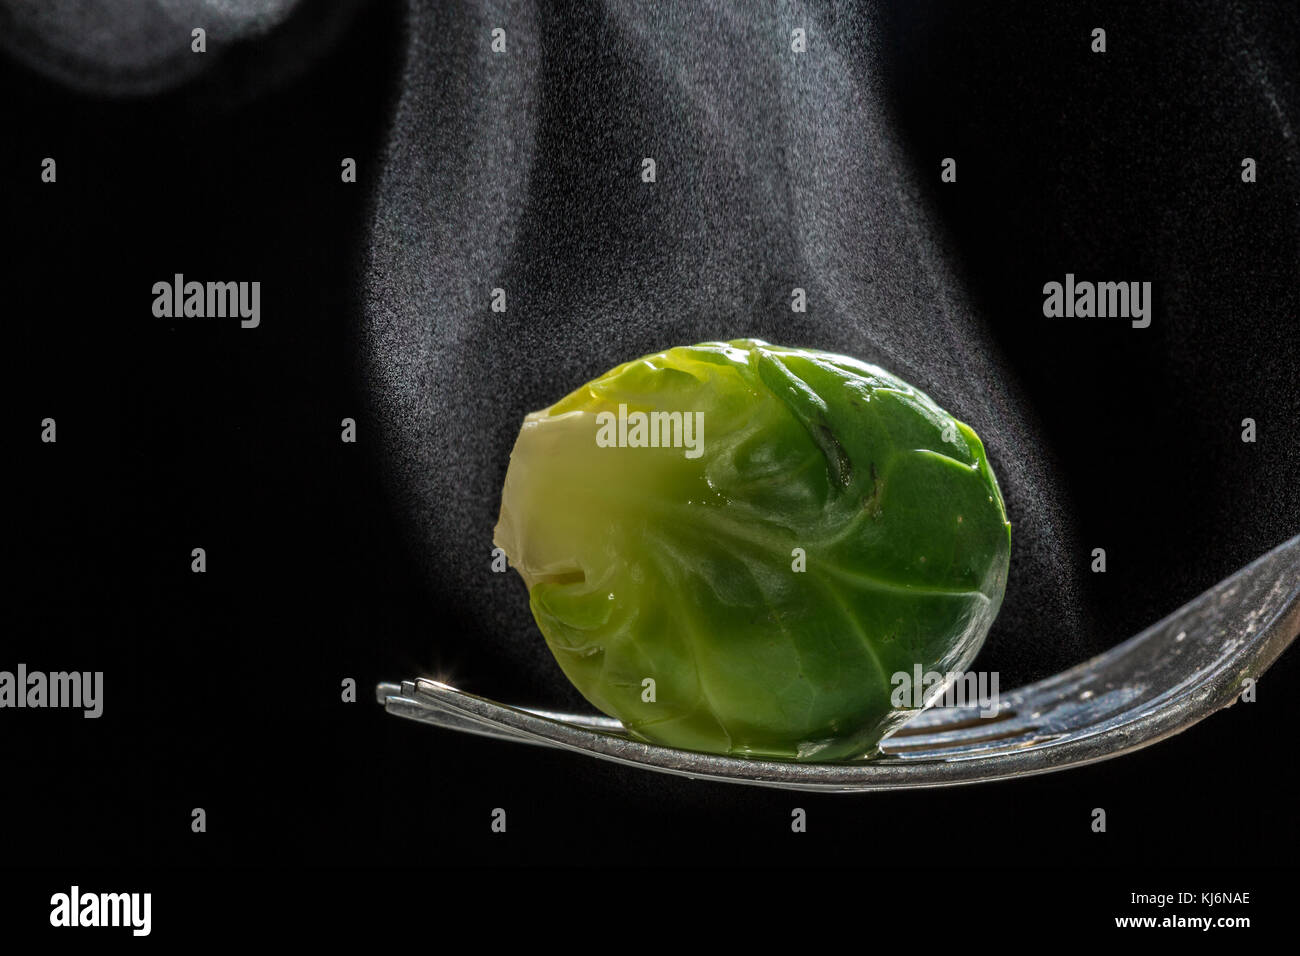 Just cooked steaming brussels sprout. - Stock Image